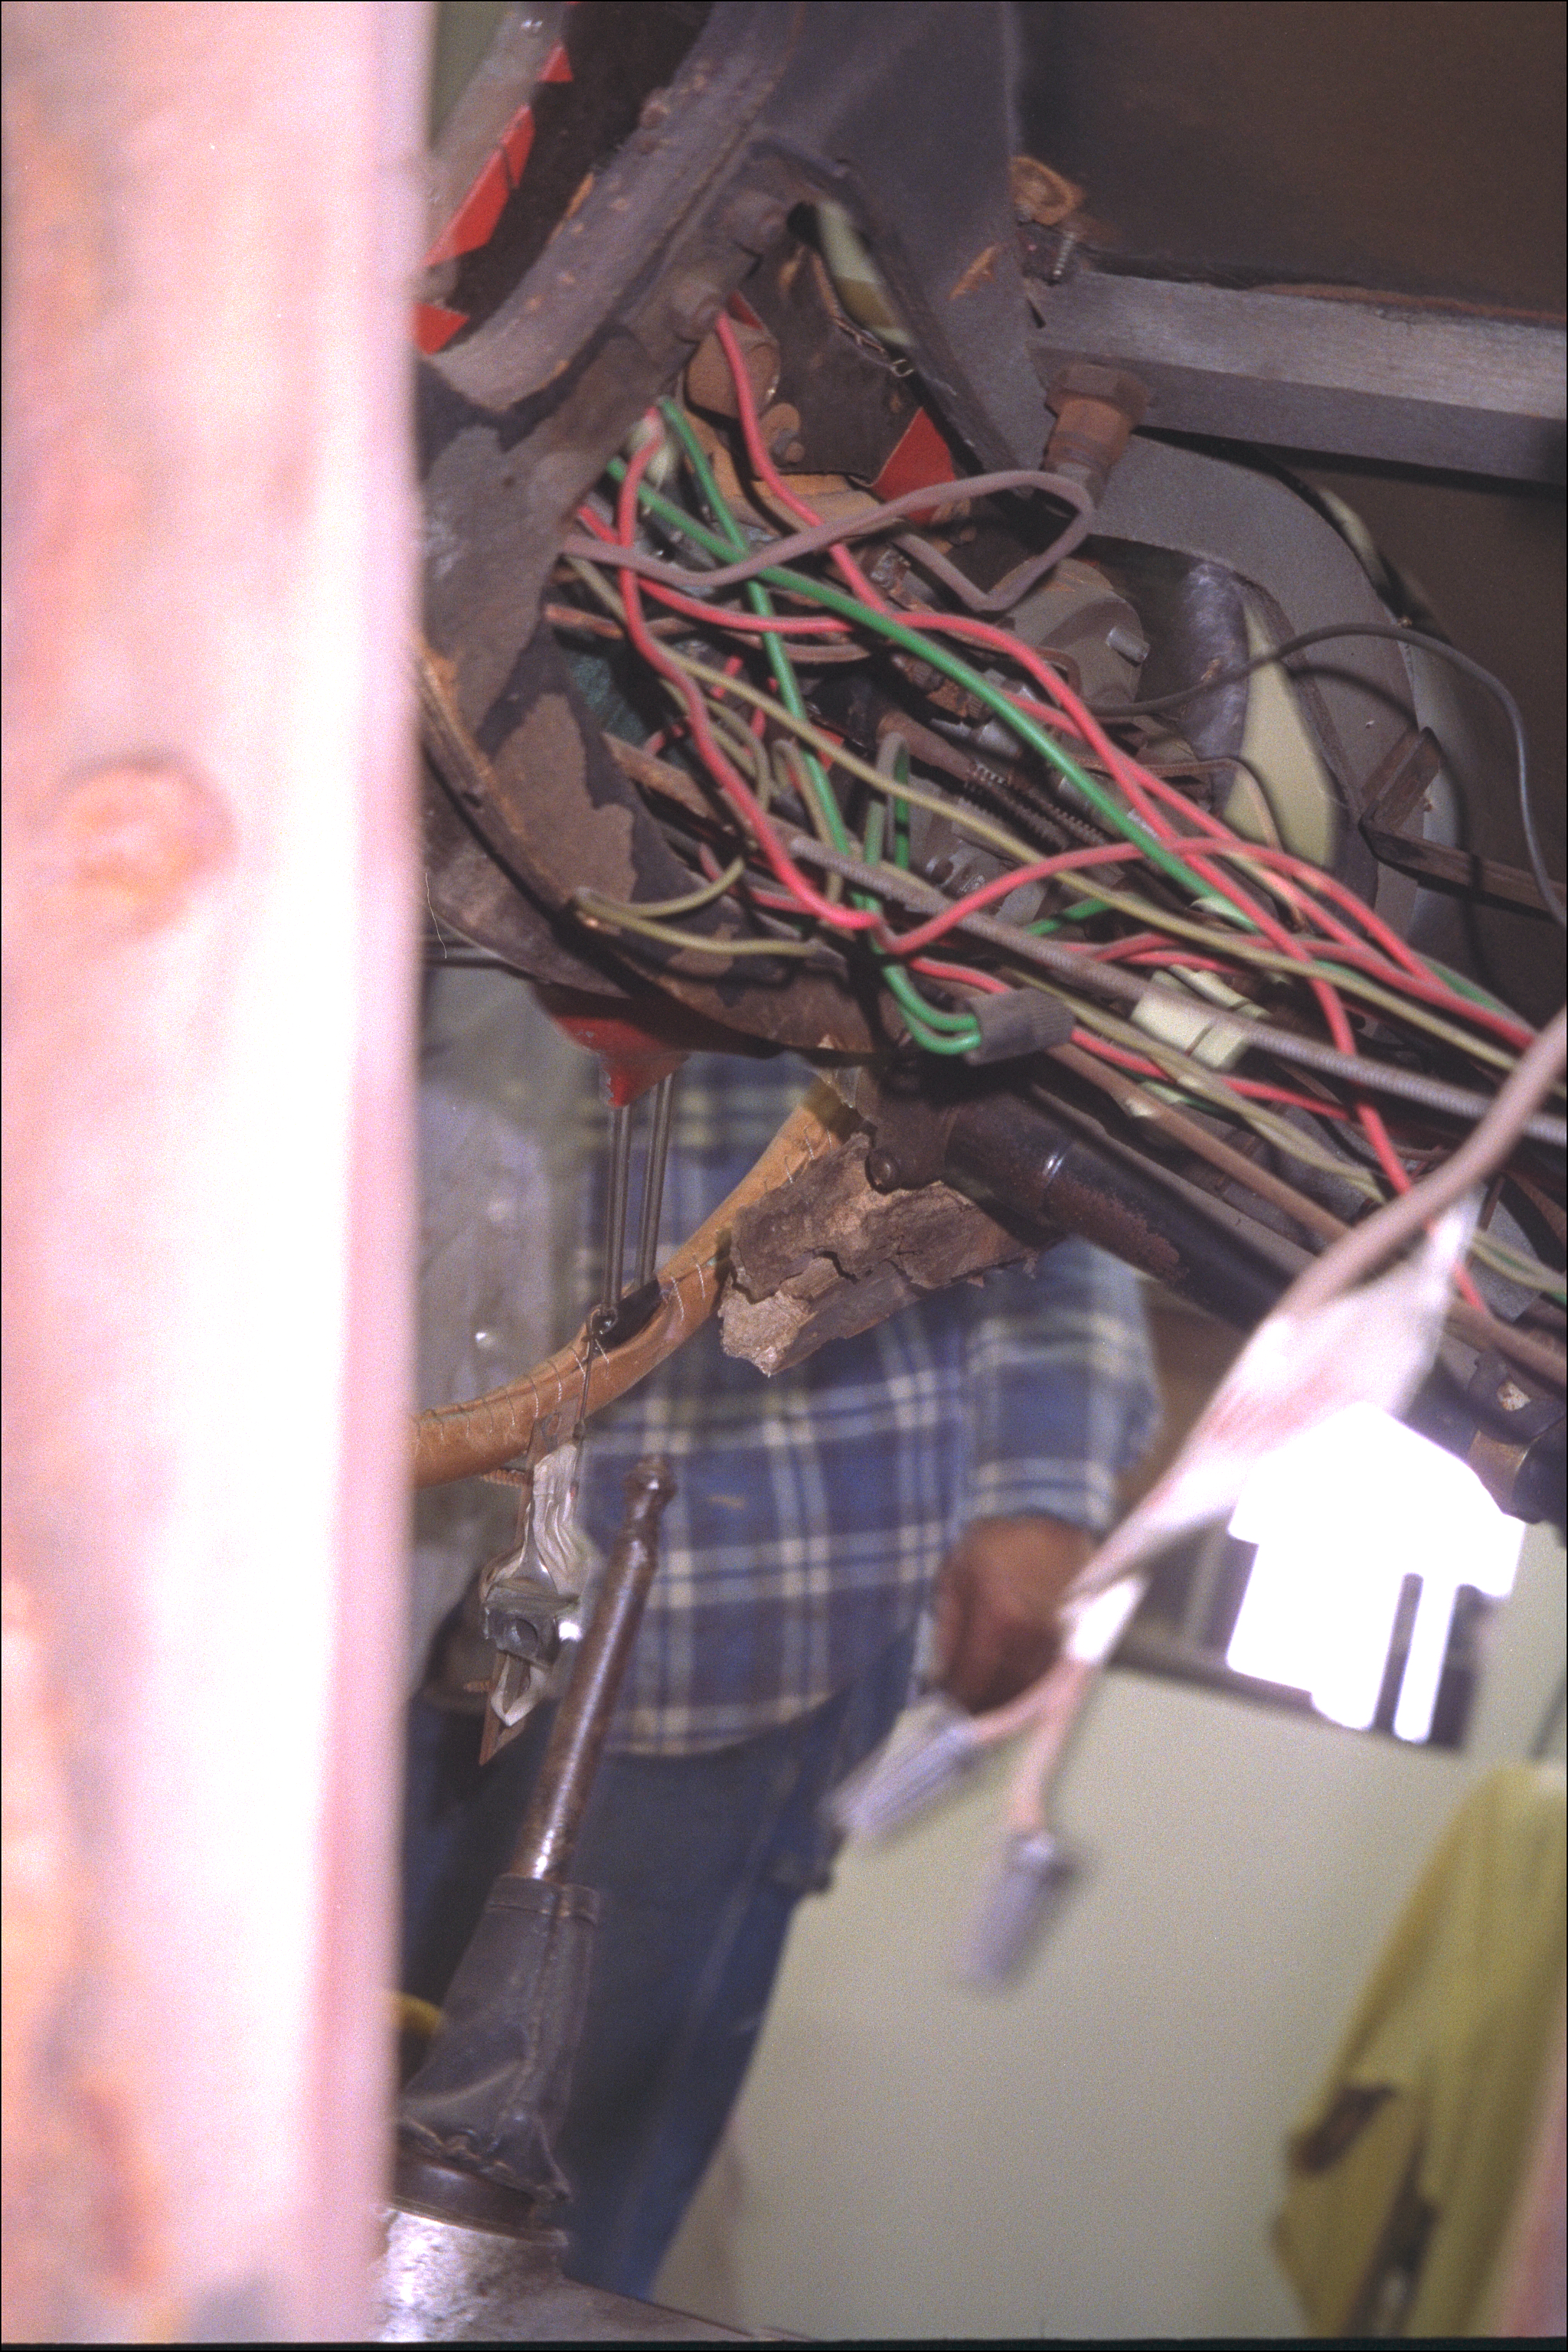 Wiring under the cowl